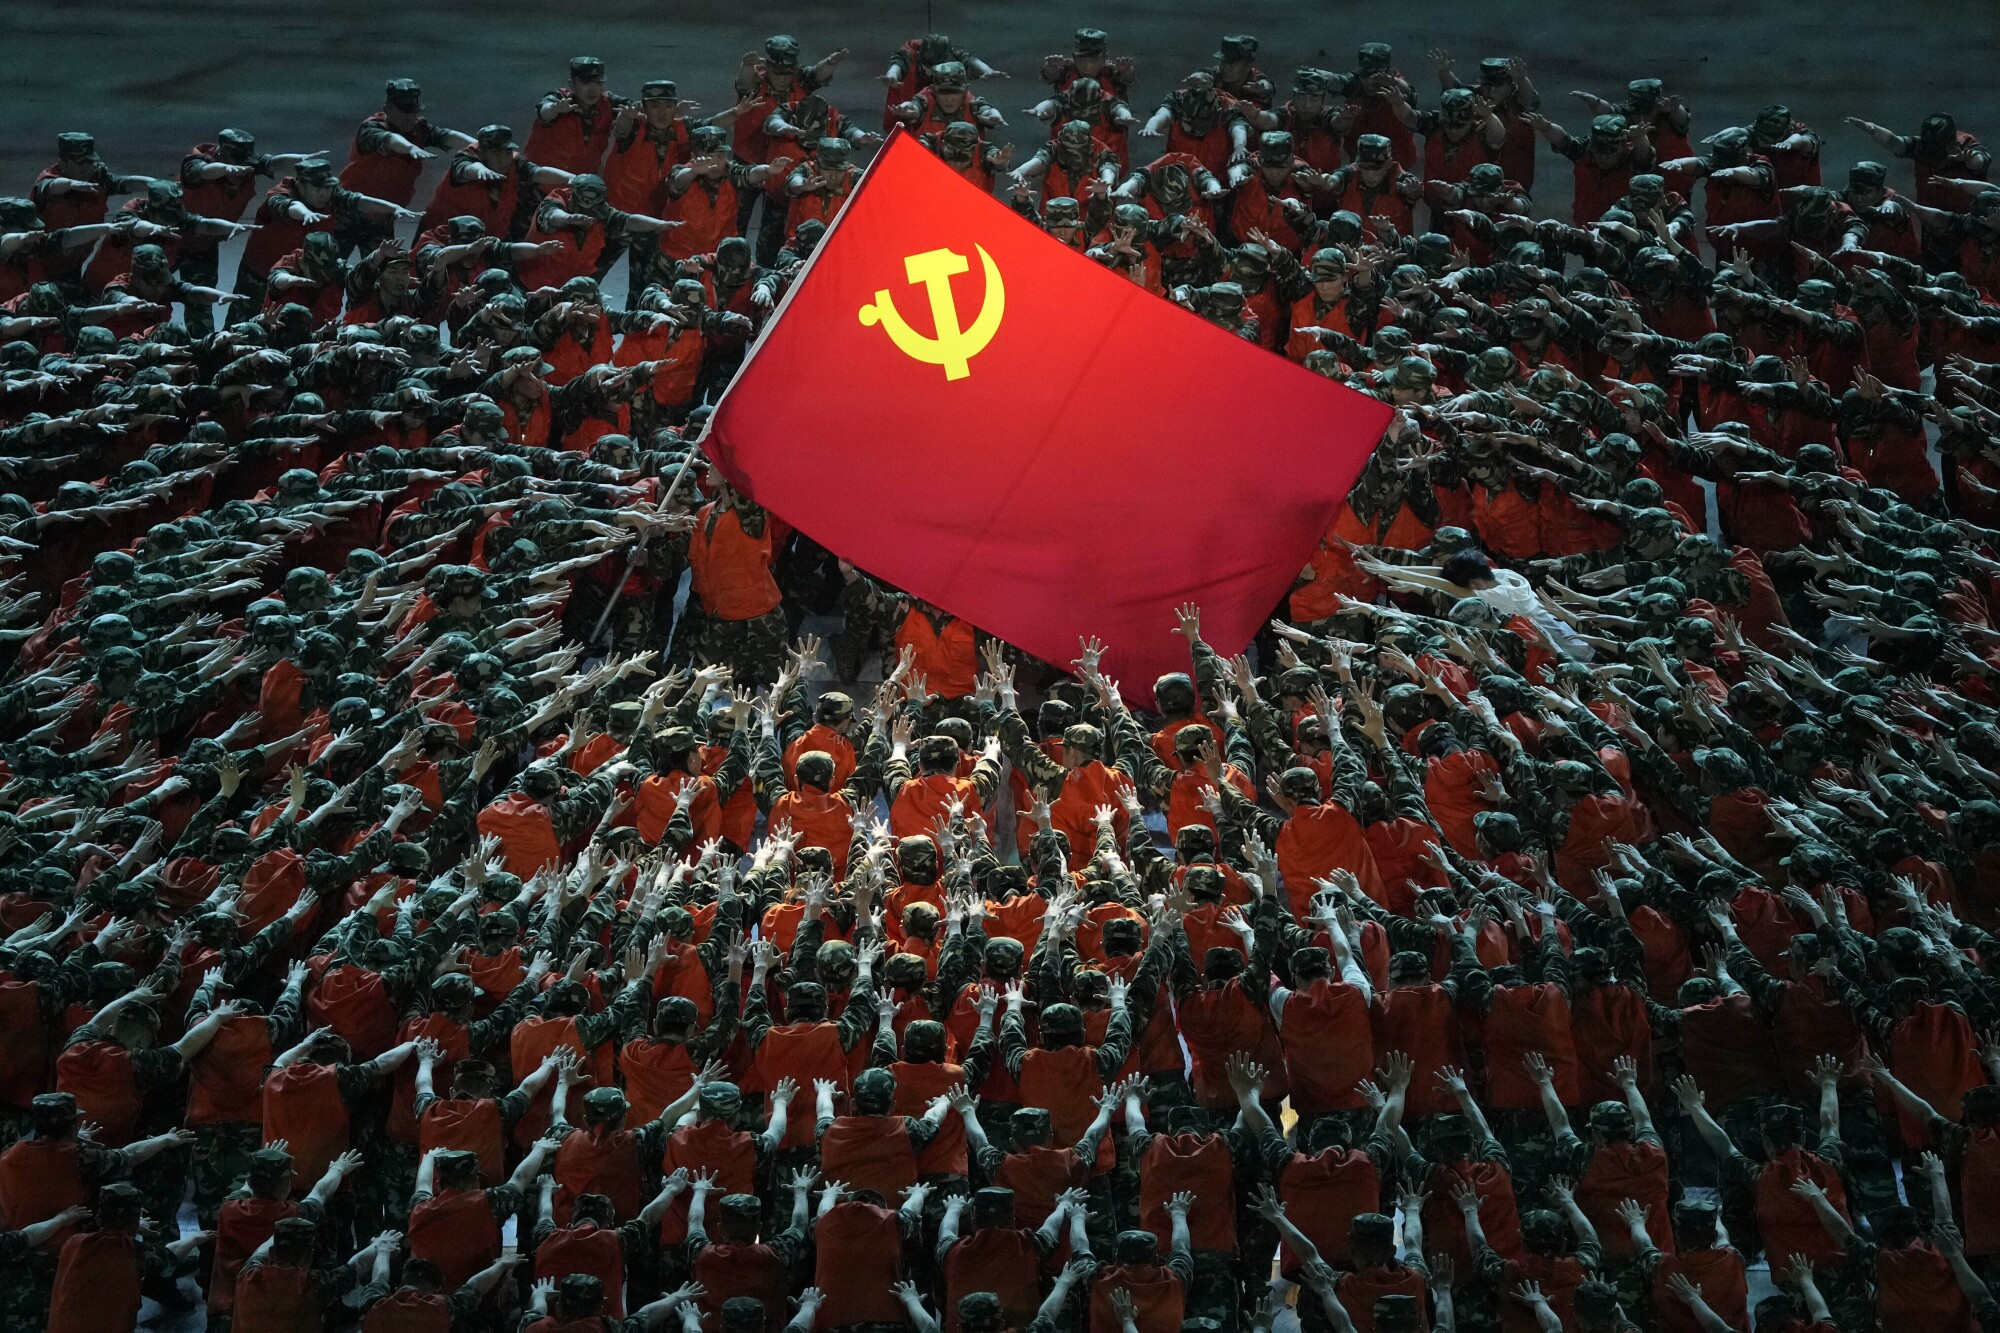 A large red flag with a hammer and sickle symbol is encircled by rows of people wearing red, with arms extended